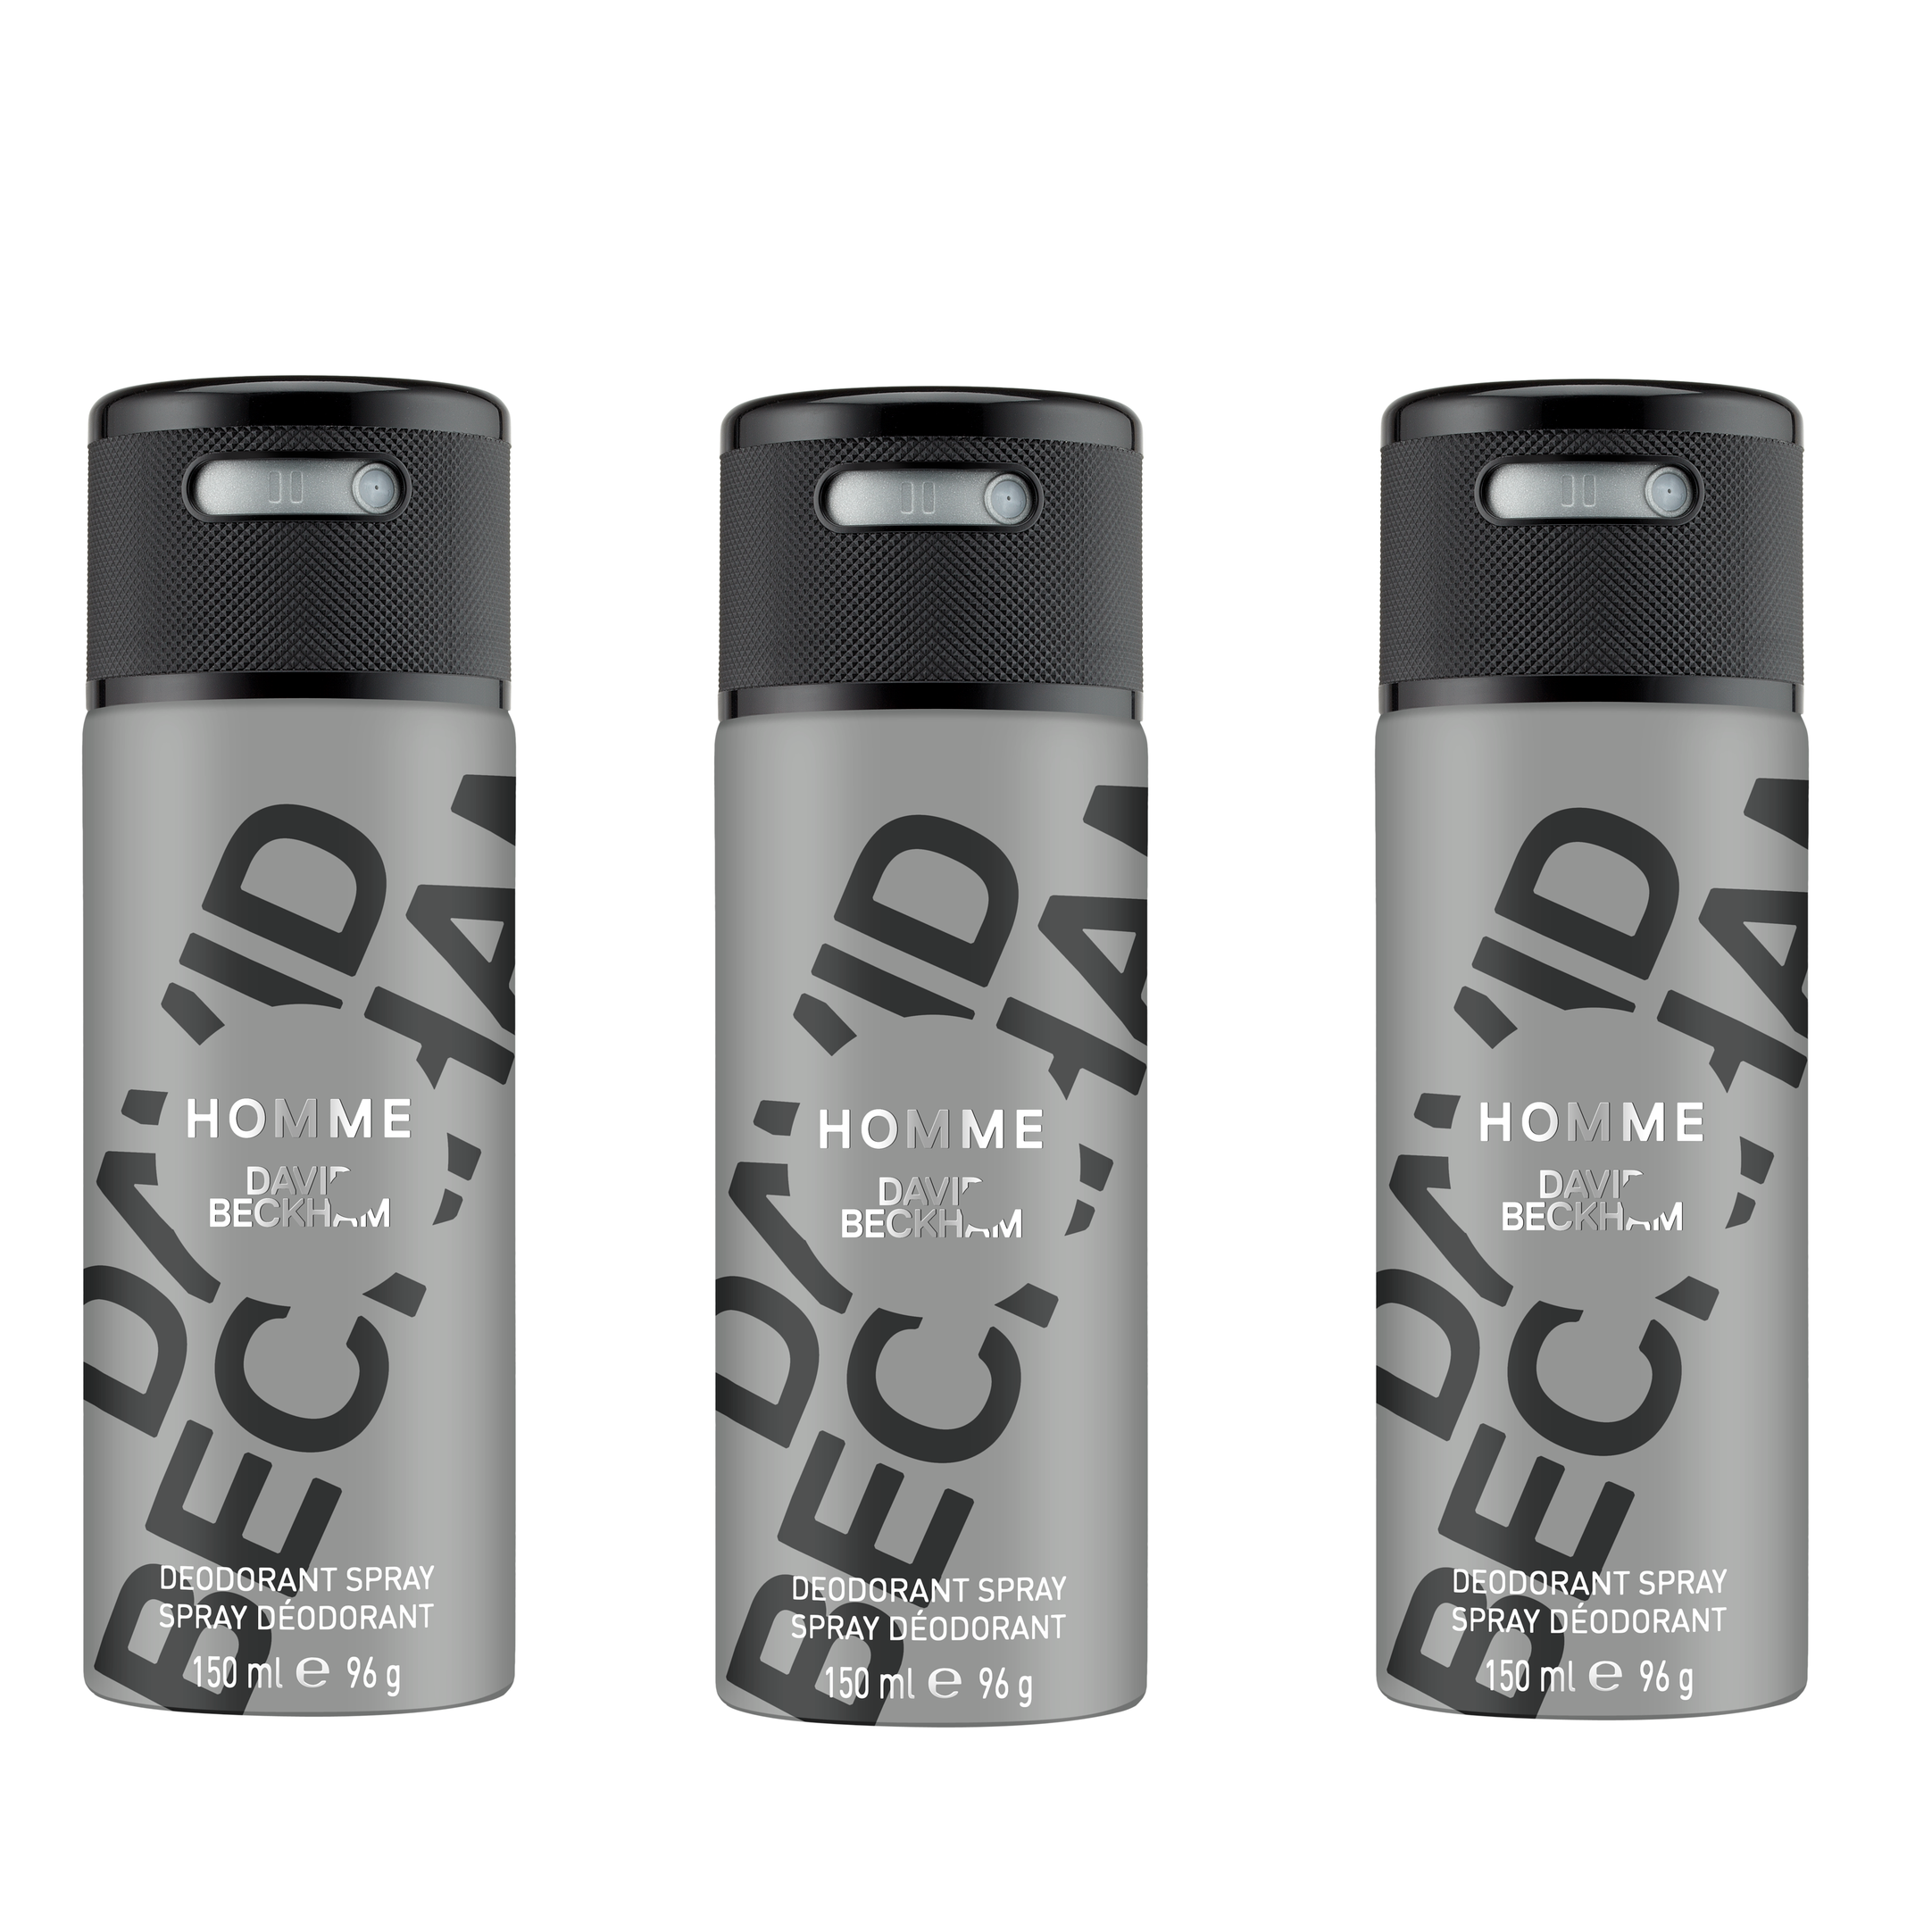 David Beckham - 3x Homme Deodorant Spray 150 ml